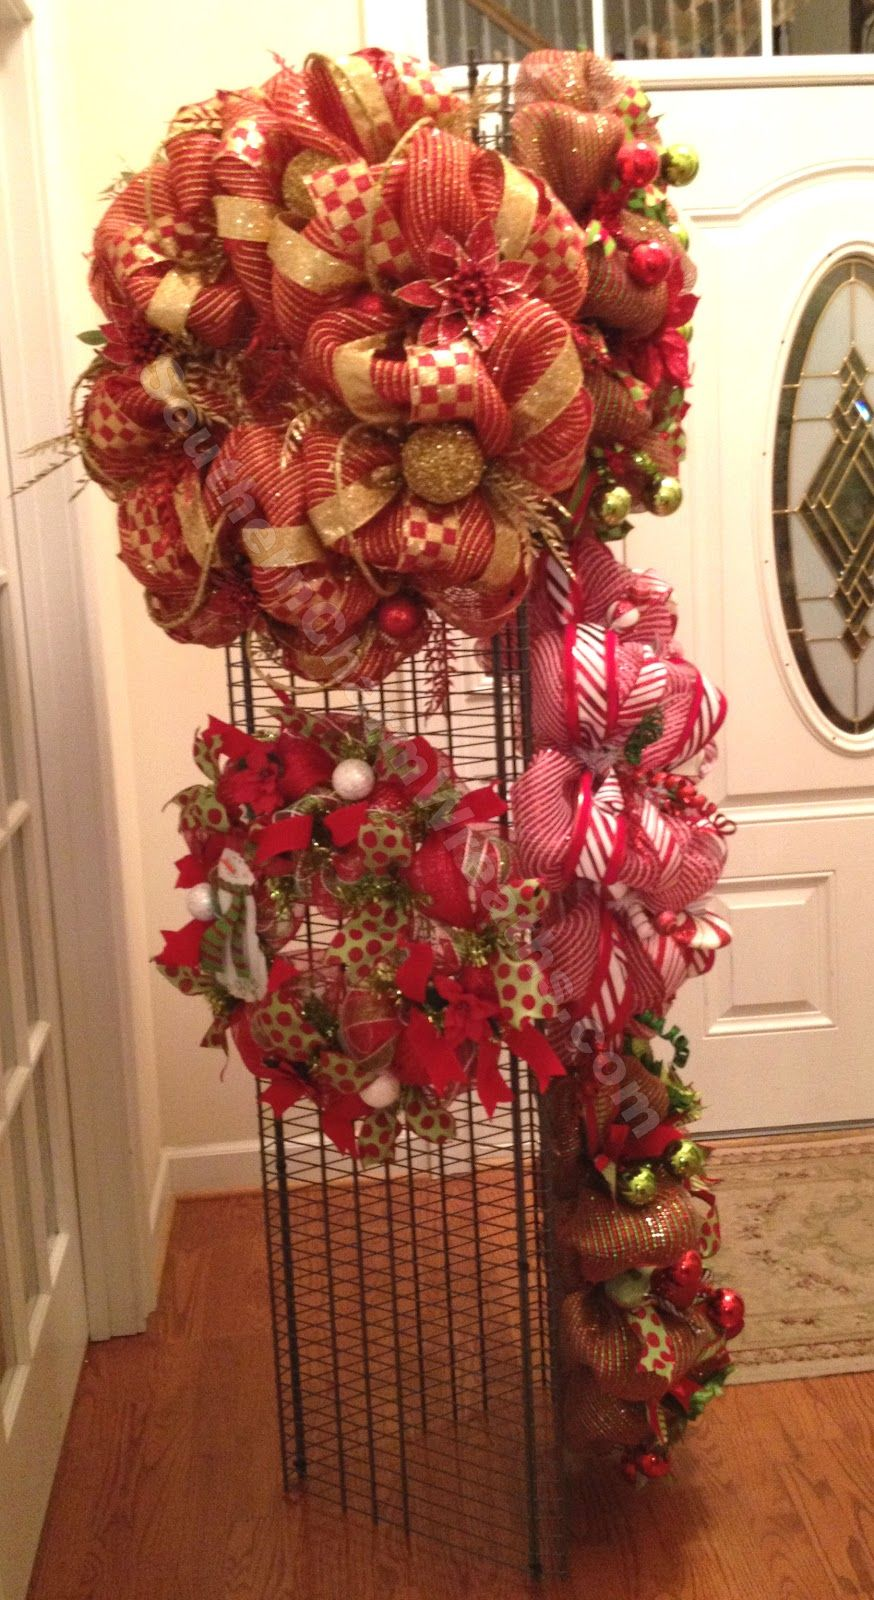 How to make a wreath craft show display or storage tower for Craft wreaths for sale